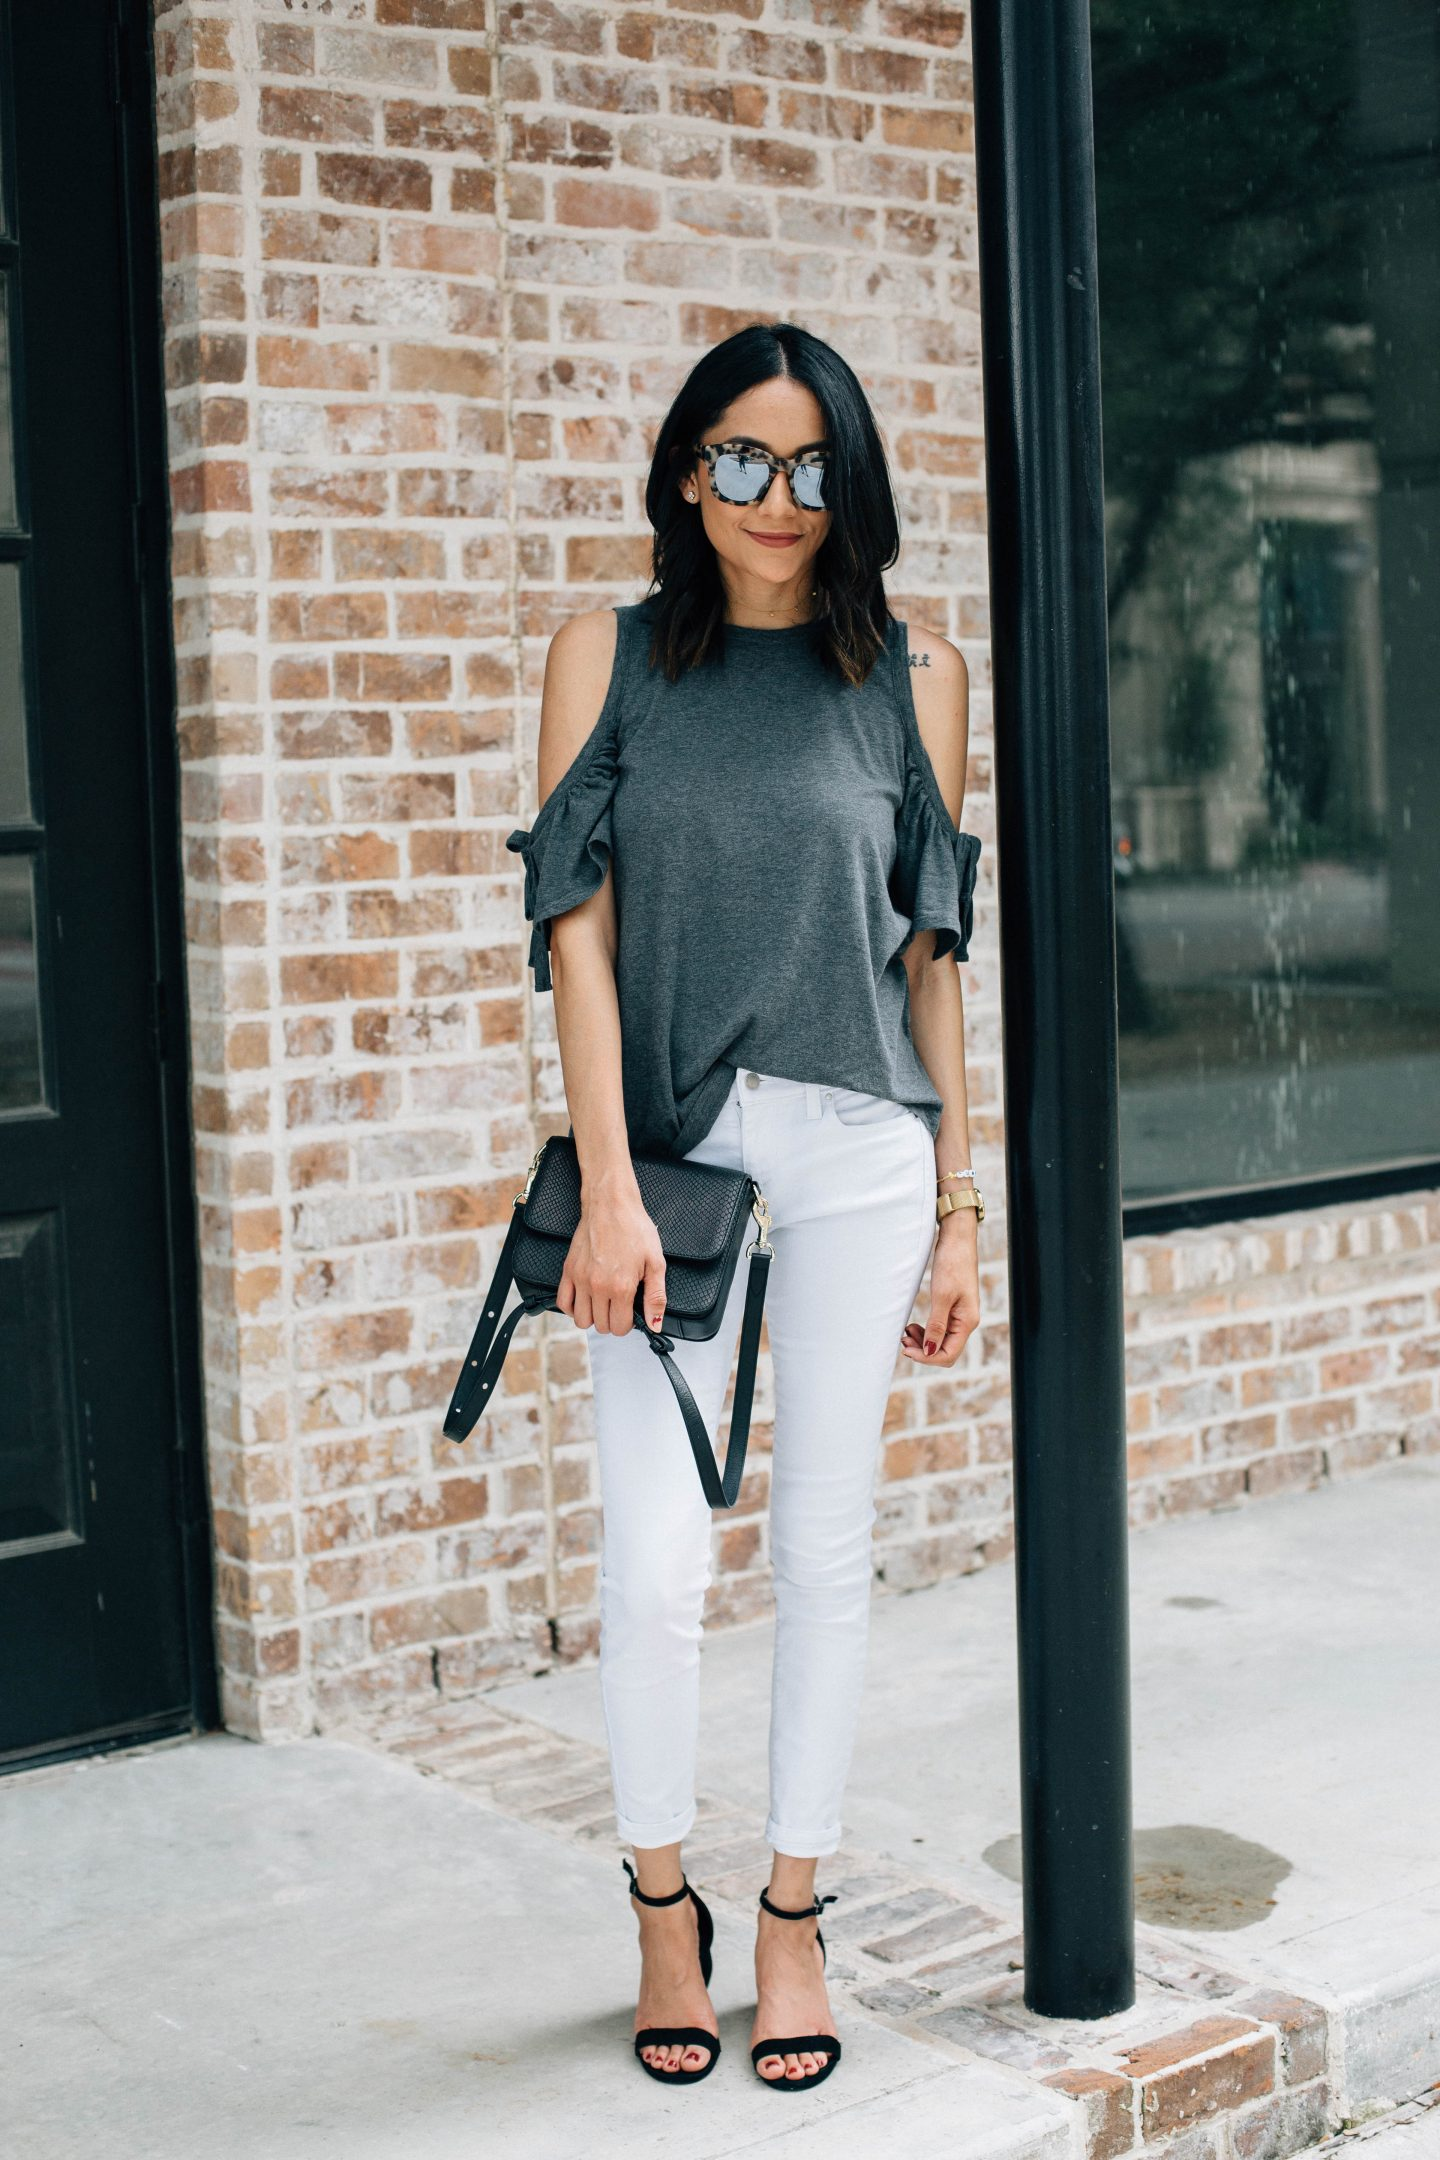 A Chic Way To Spruce Up Your Weekend Look